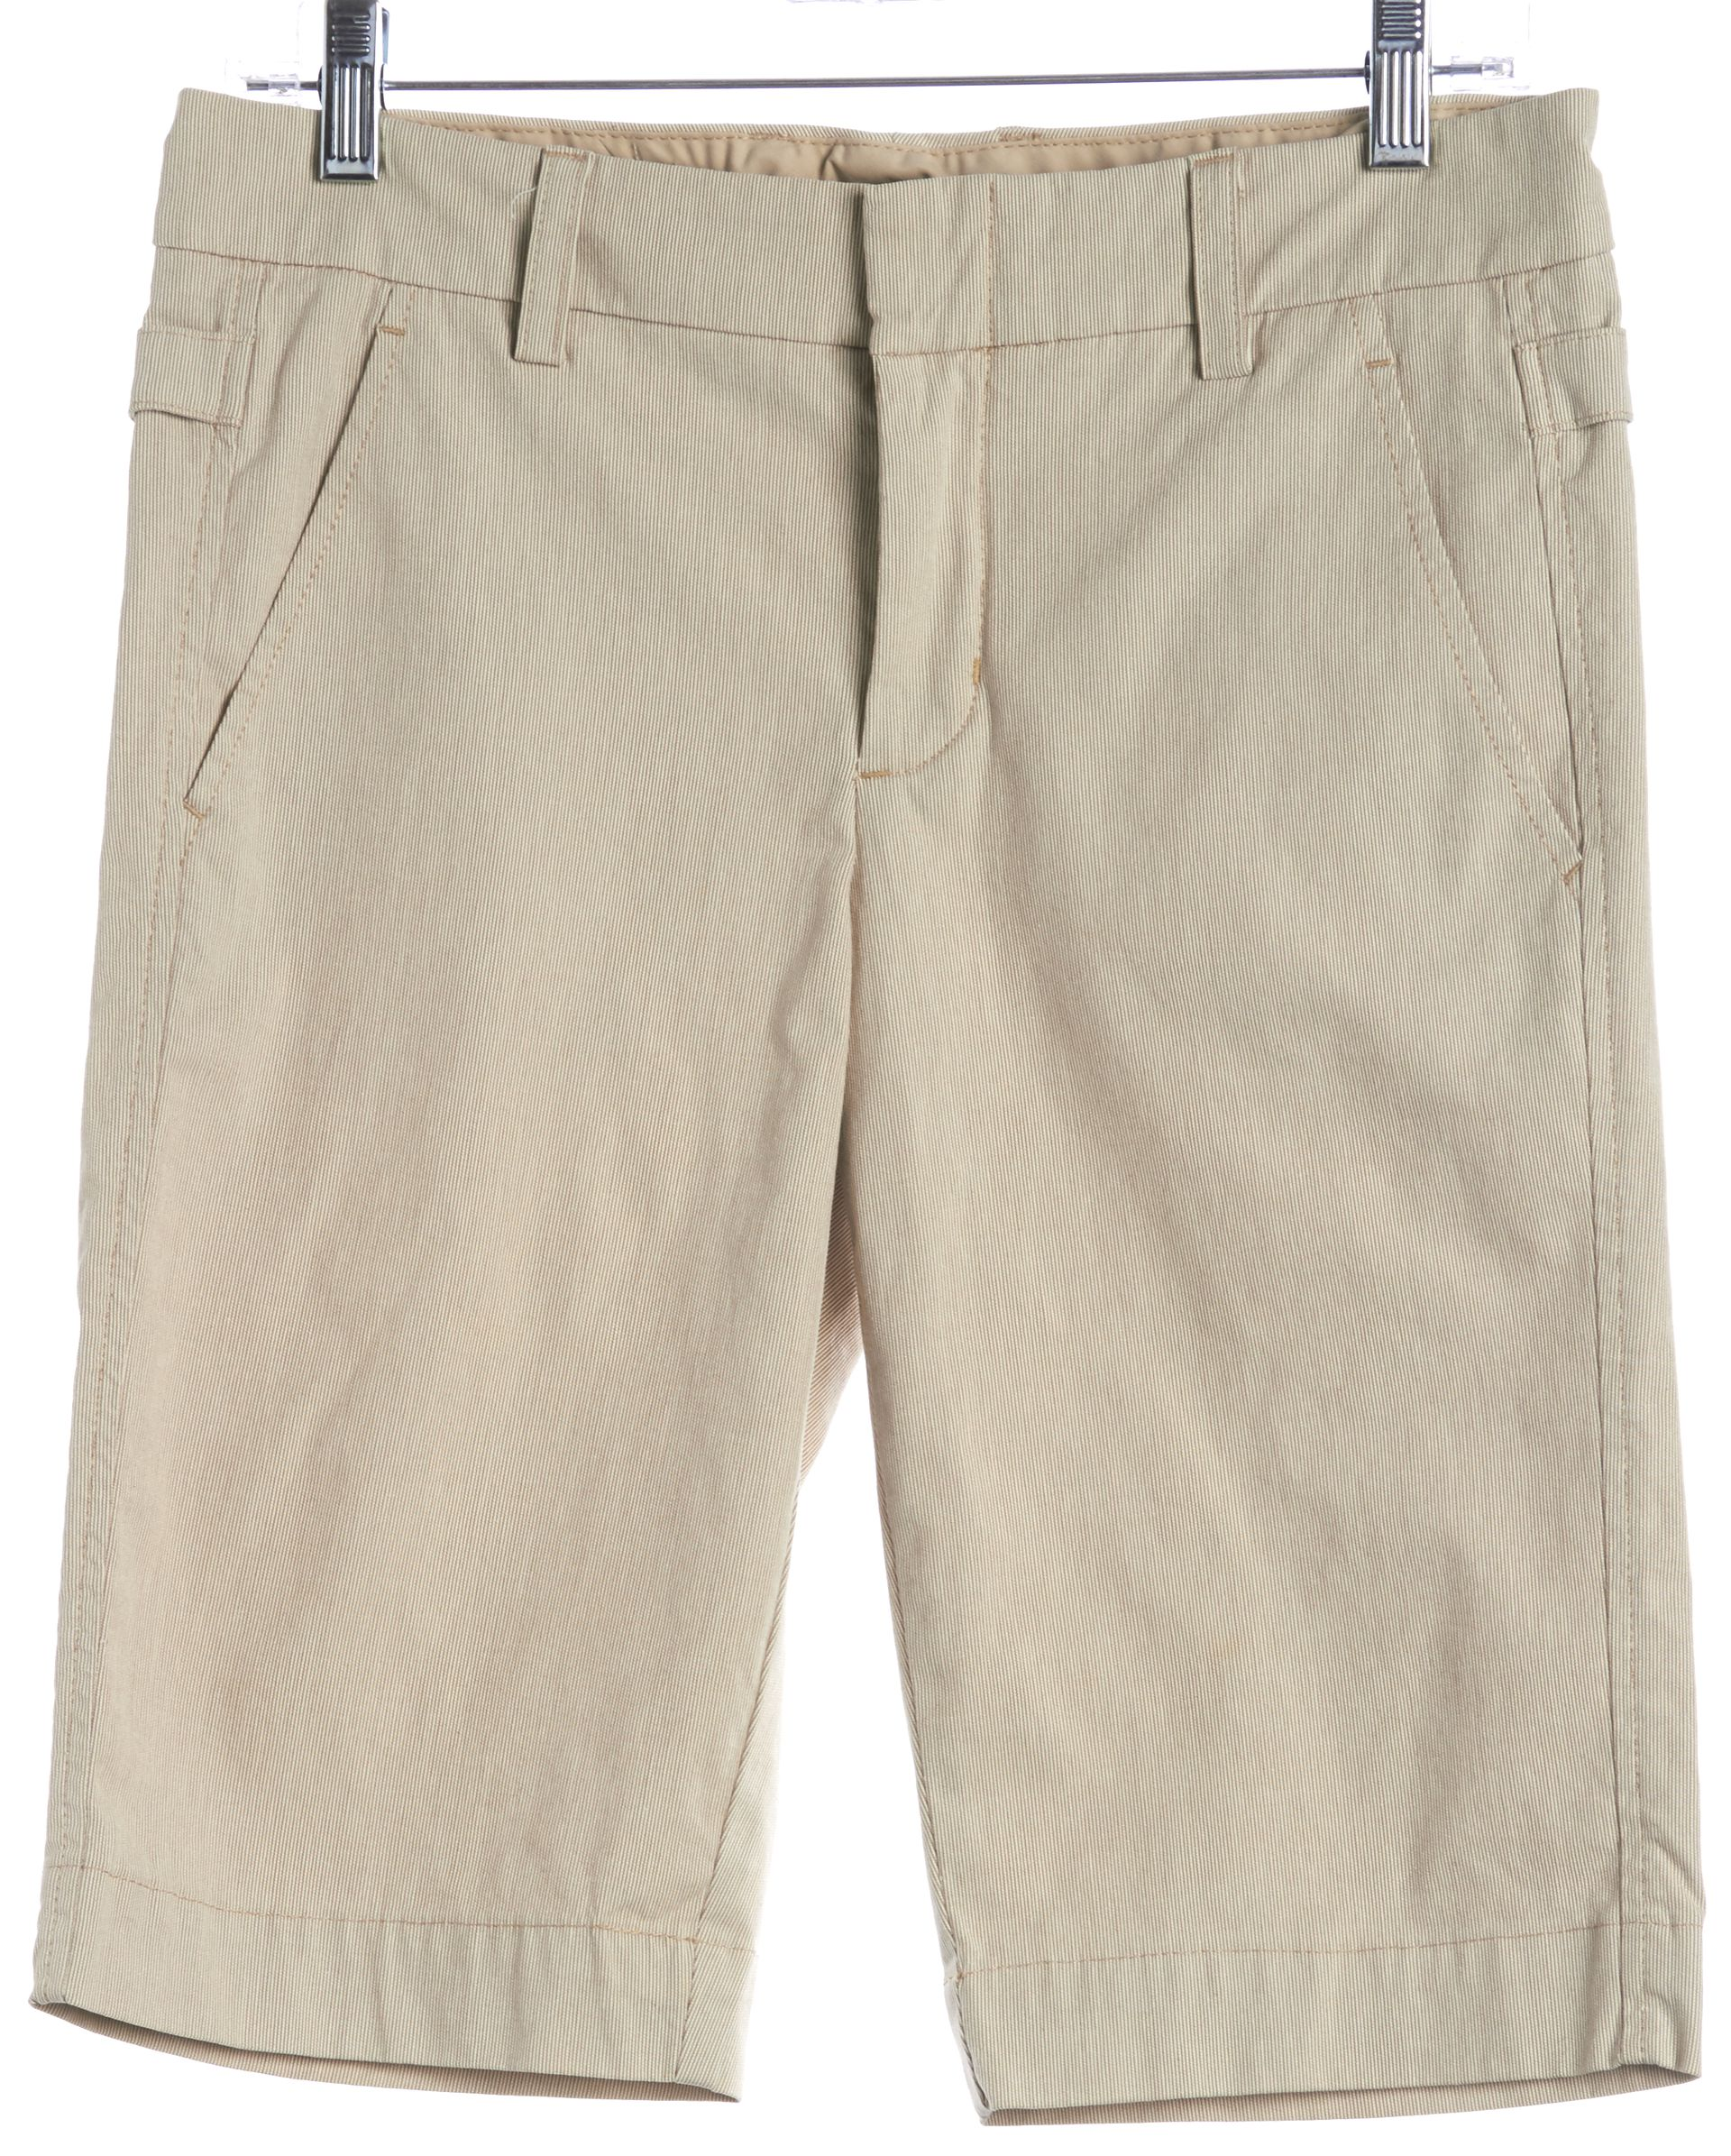 Vince Beige White Striped Bermuda Shorts | Material World